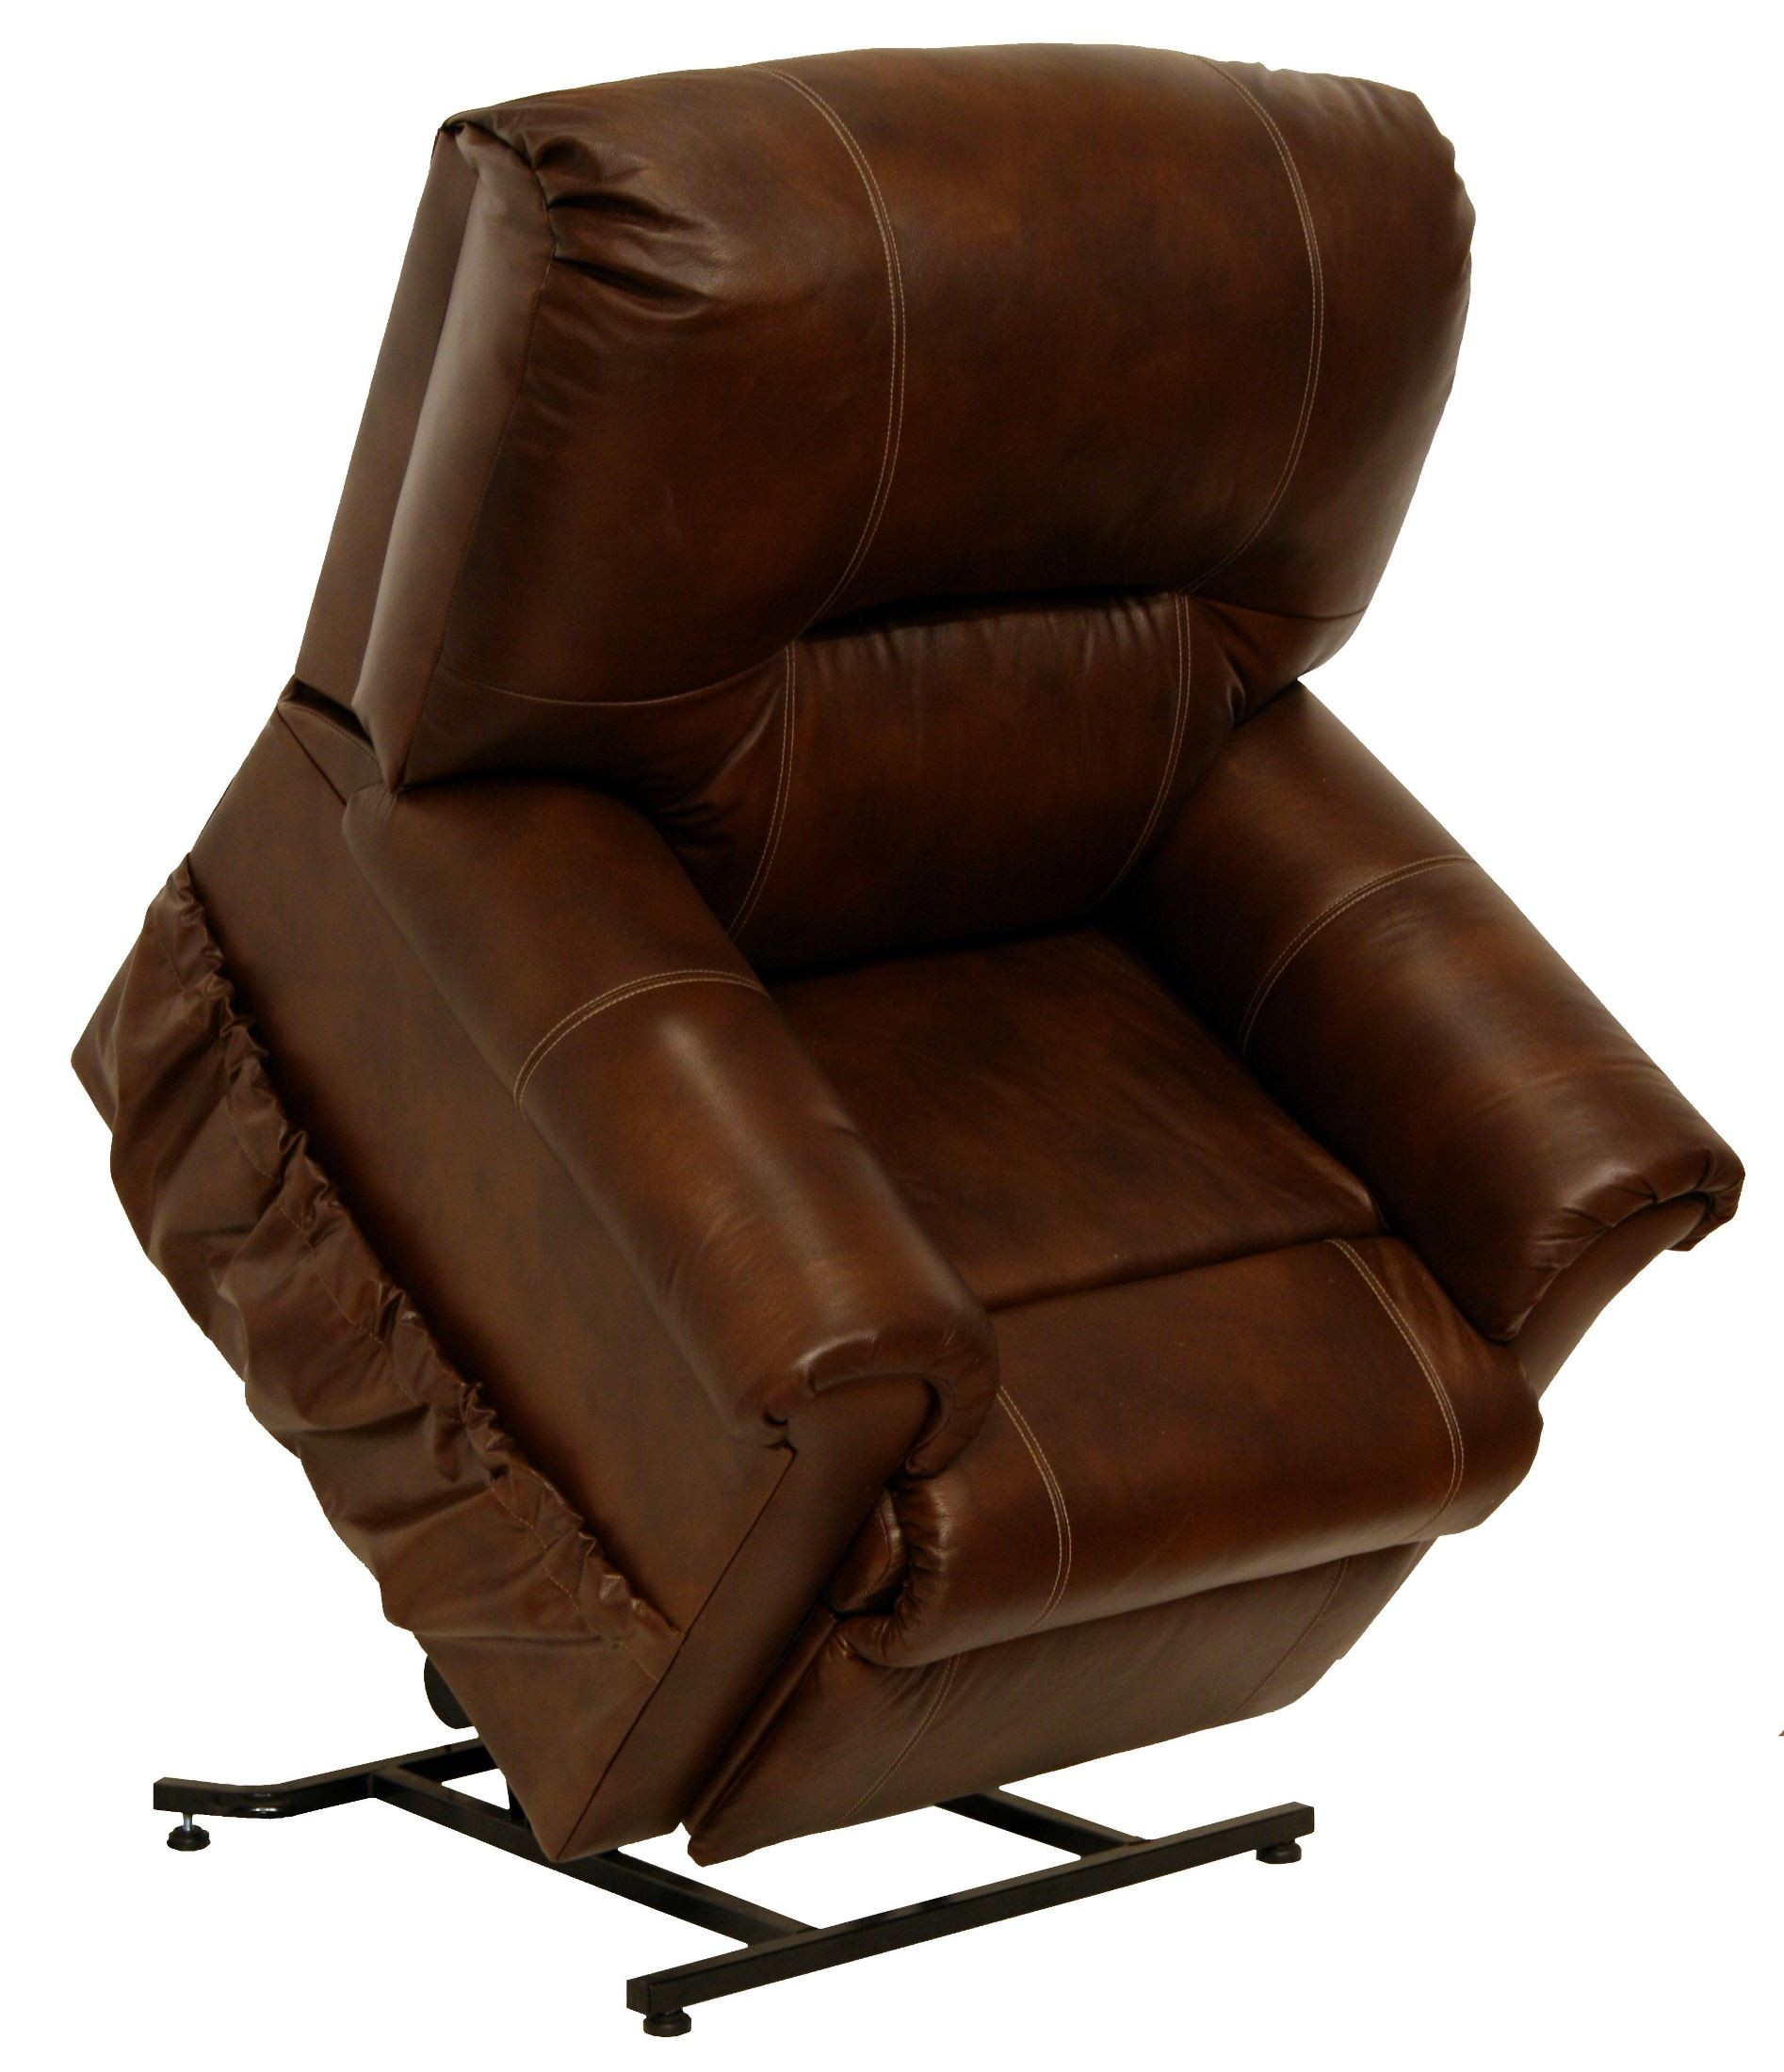 power lift chair rentals philadelphia vintage tobacco leather from catnapper